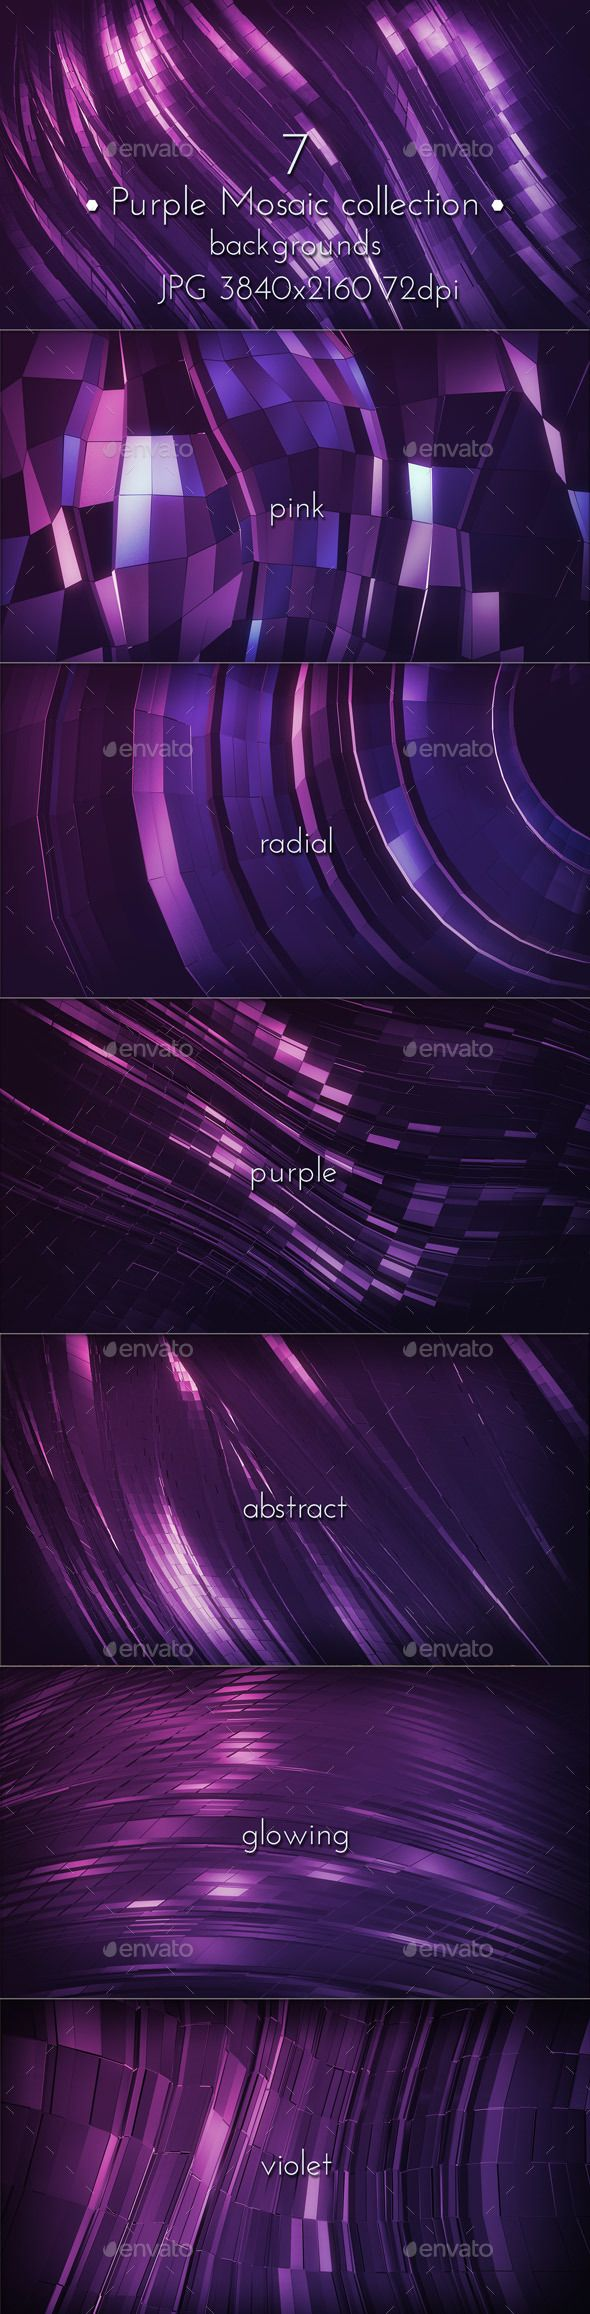 Abstract Dark Pink Purple Mosaic Glowing Surface 4K backgrounds. 7 hi-res images. Jpeg 3840×2160 (16:9 format) 72 dpi